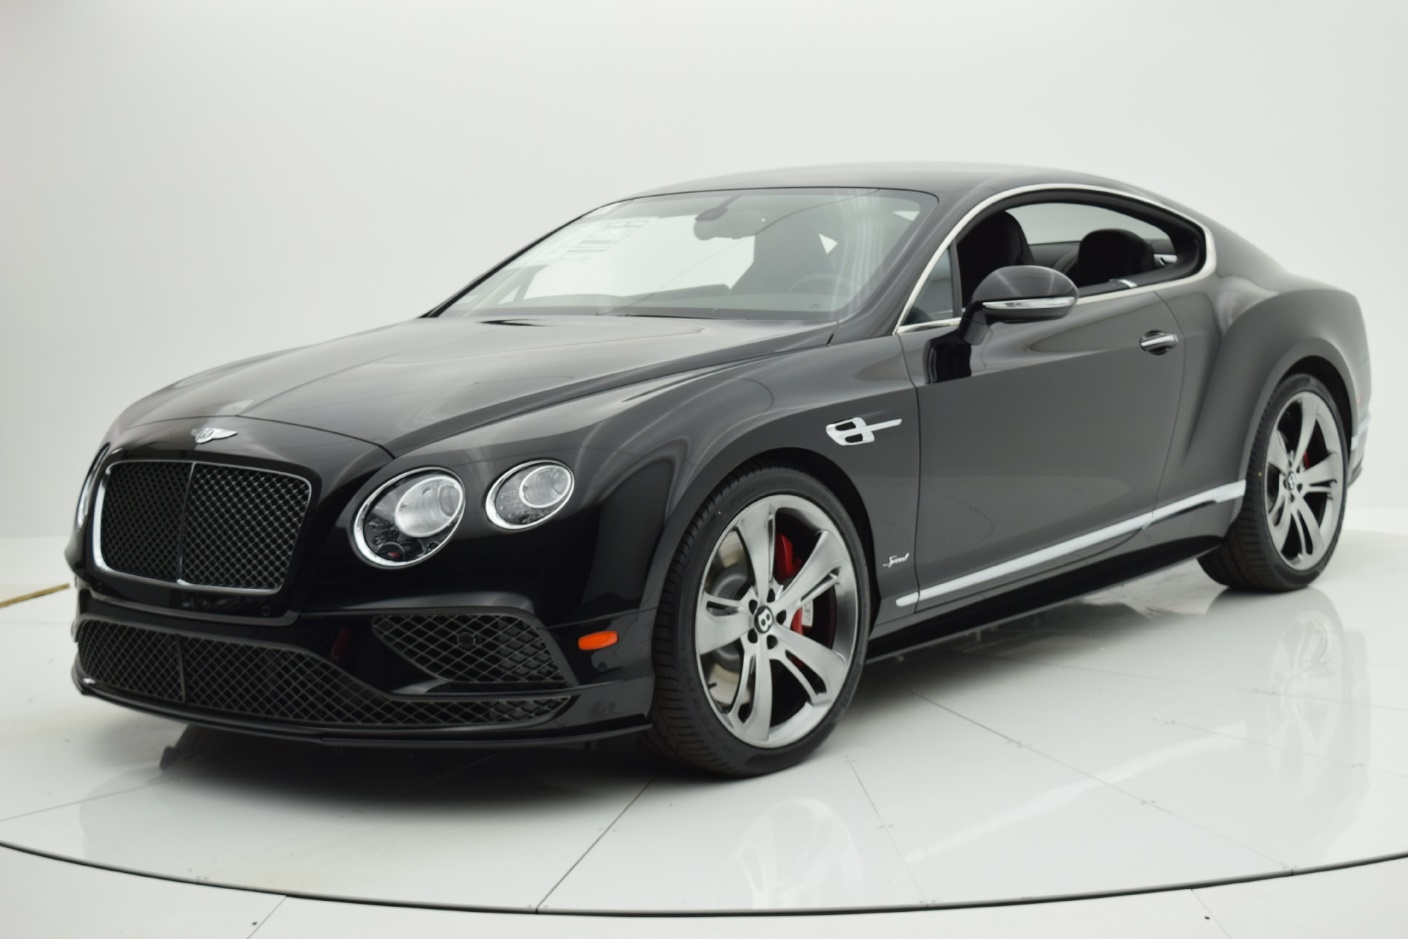 2016 bentley continental gt speed review and price coming soon cars. Black Bedroom Furniture Sets. Home Design Ideas